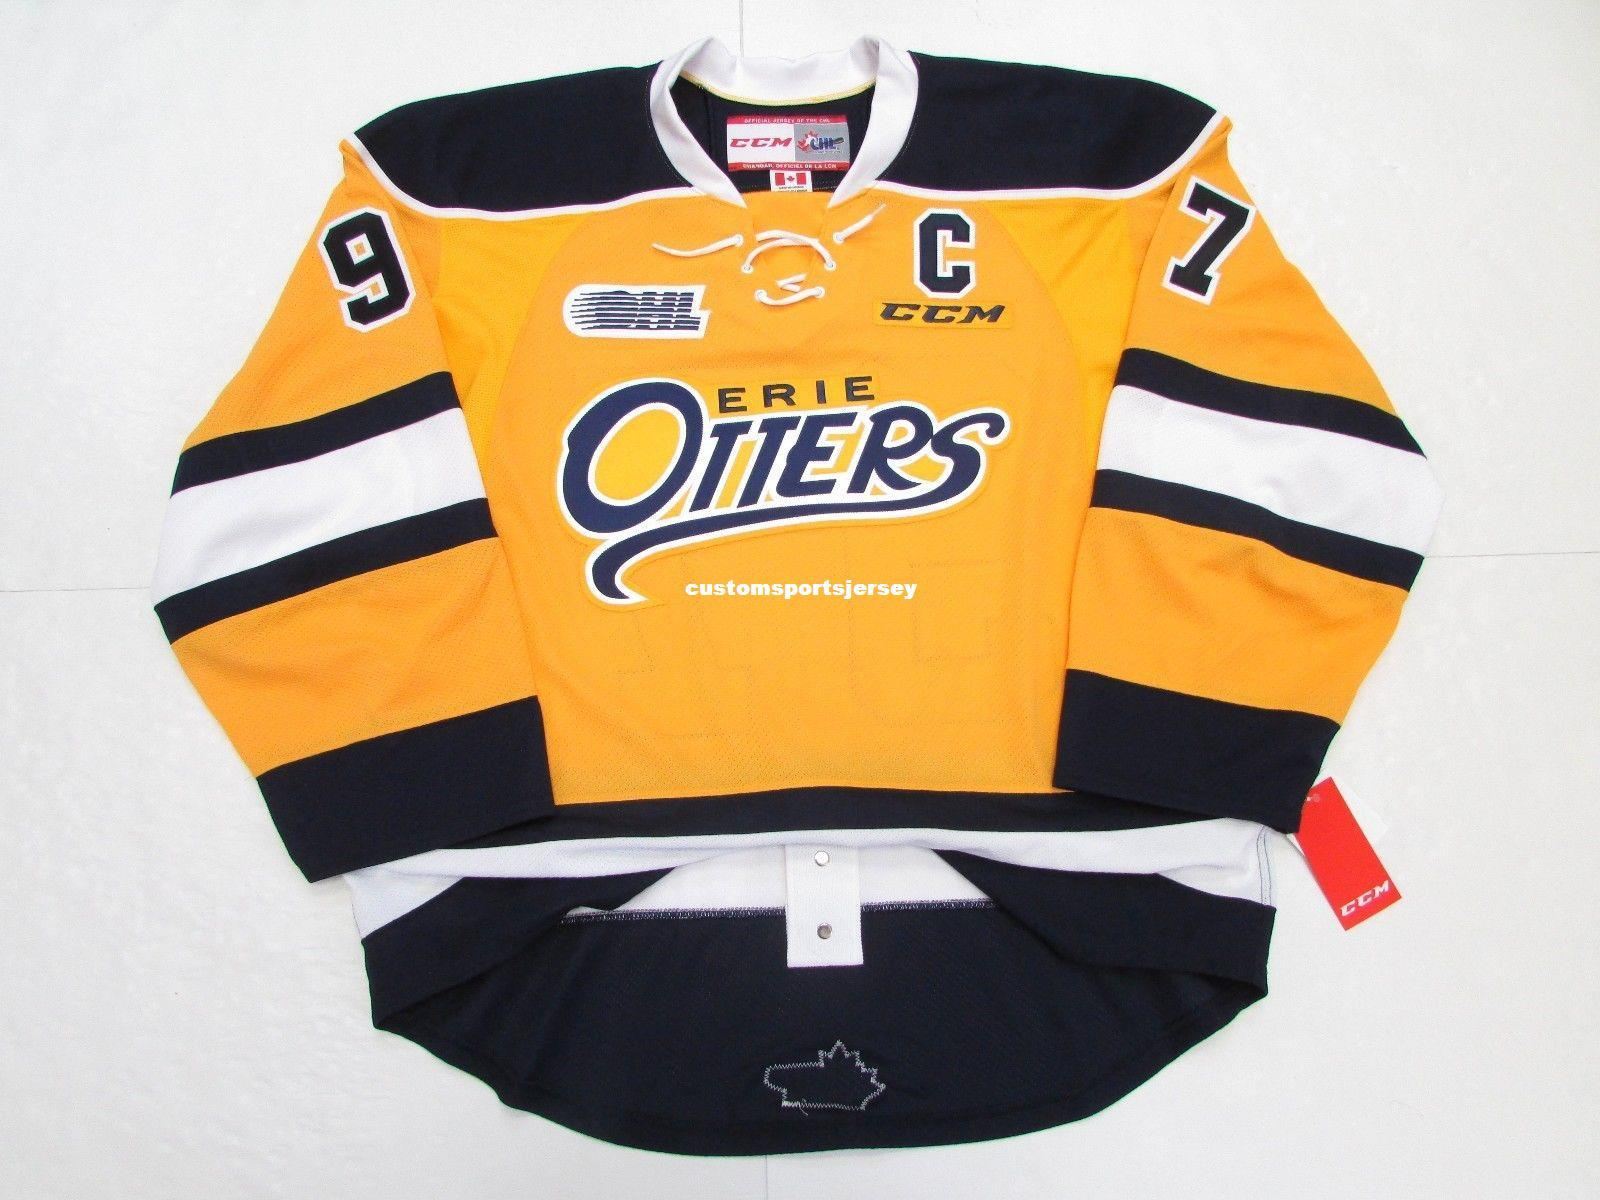 Image result for erie otters connor mcdavid jersey